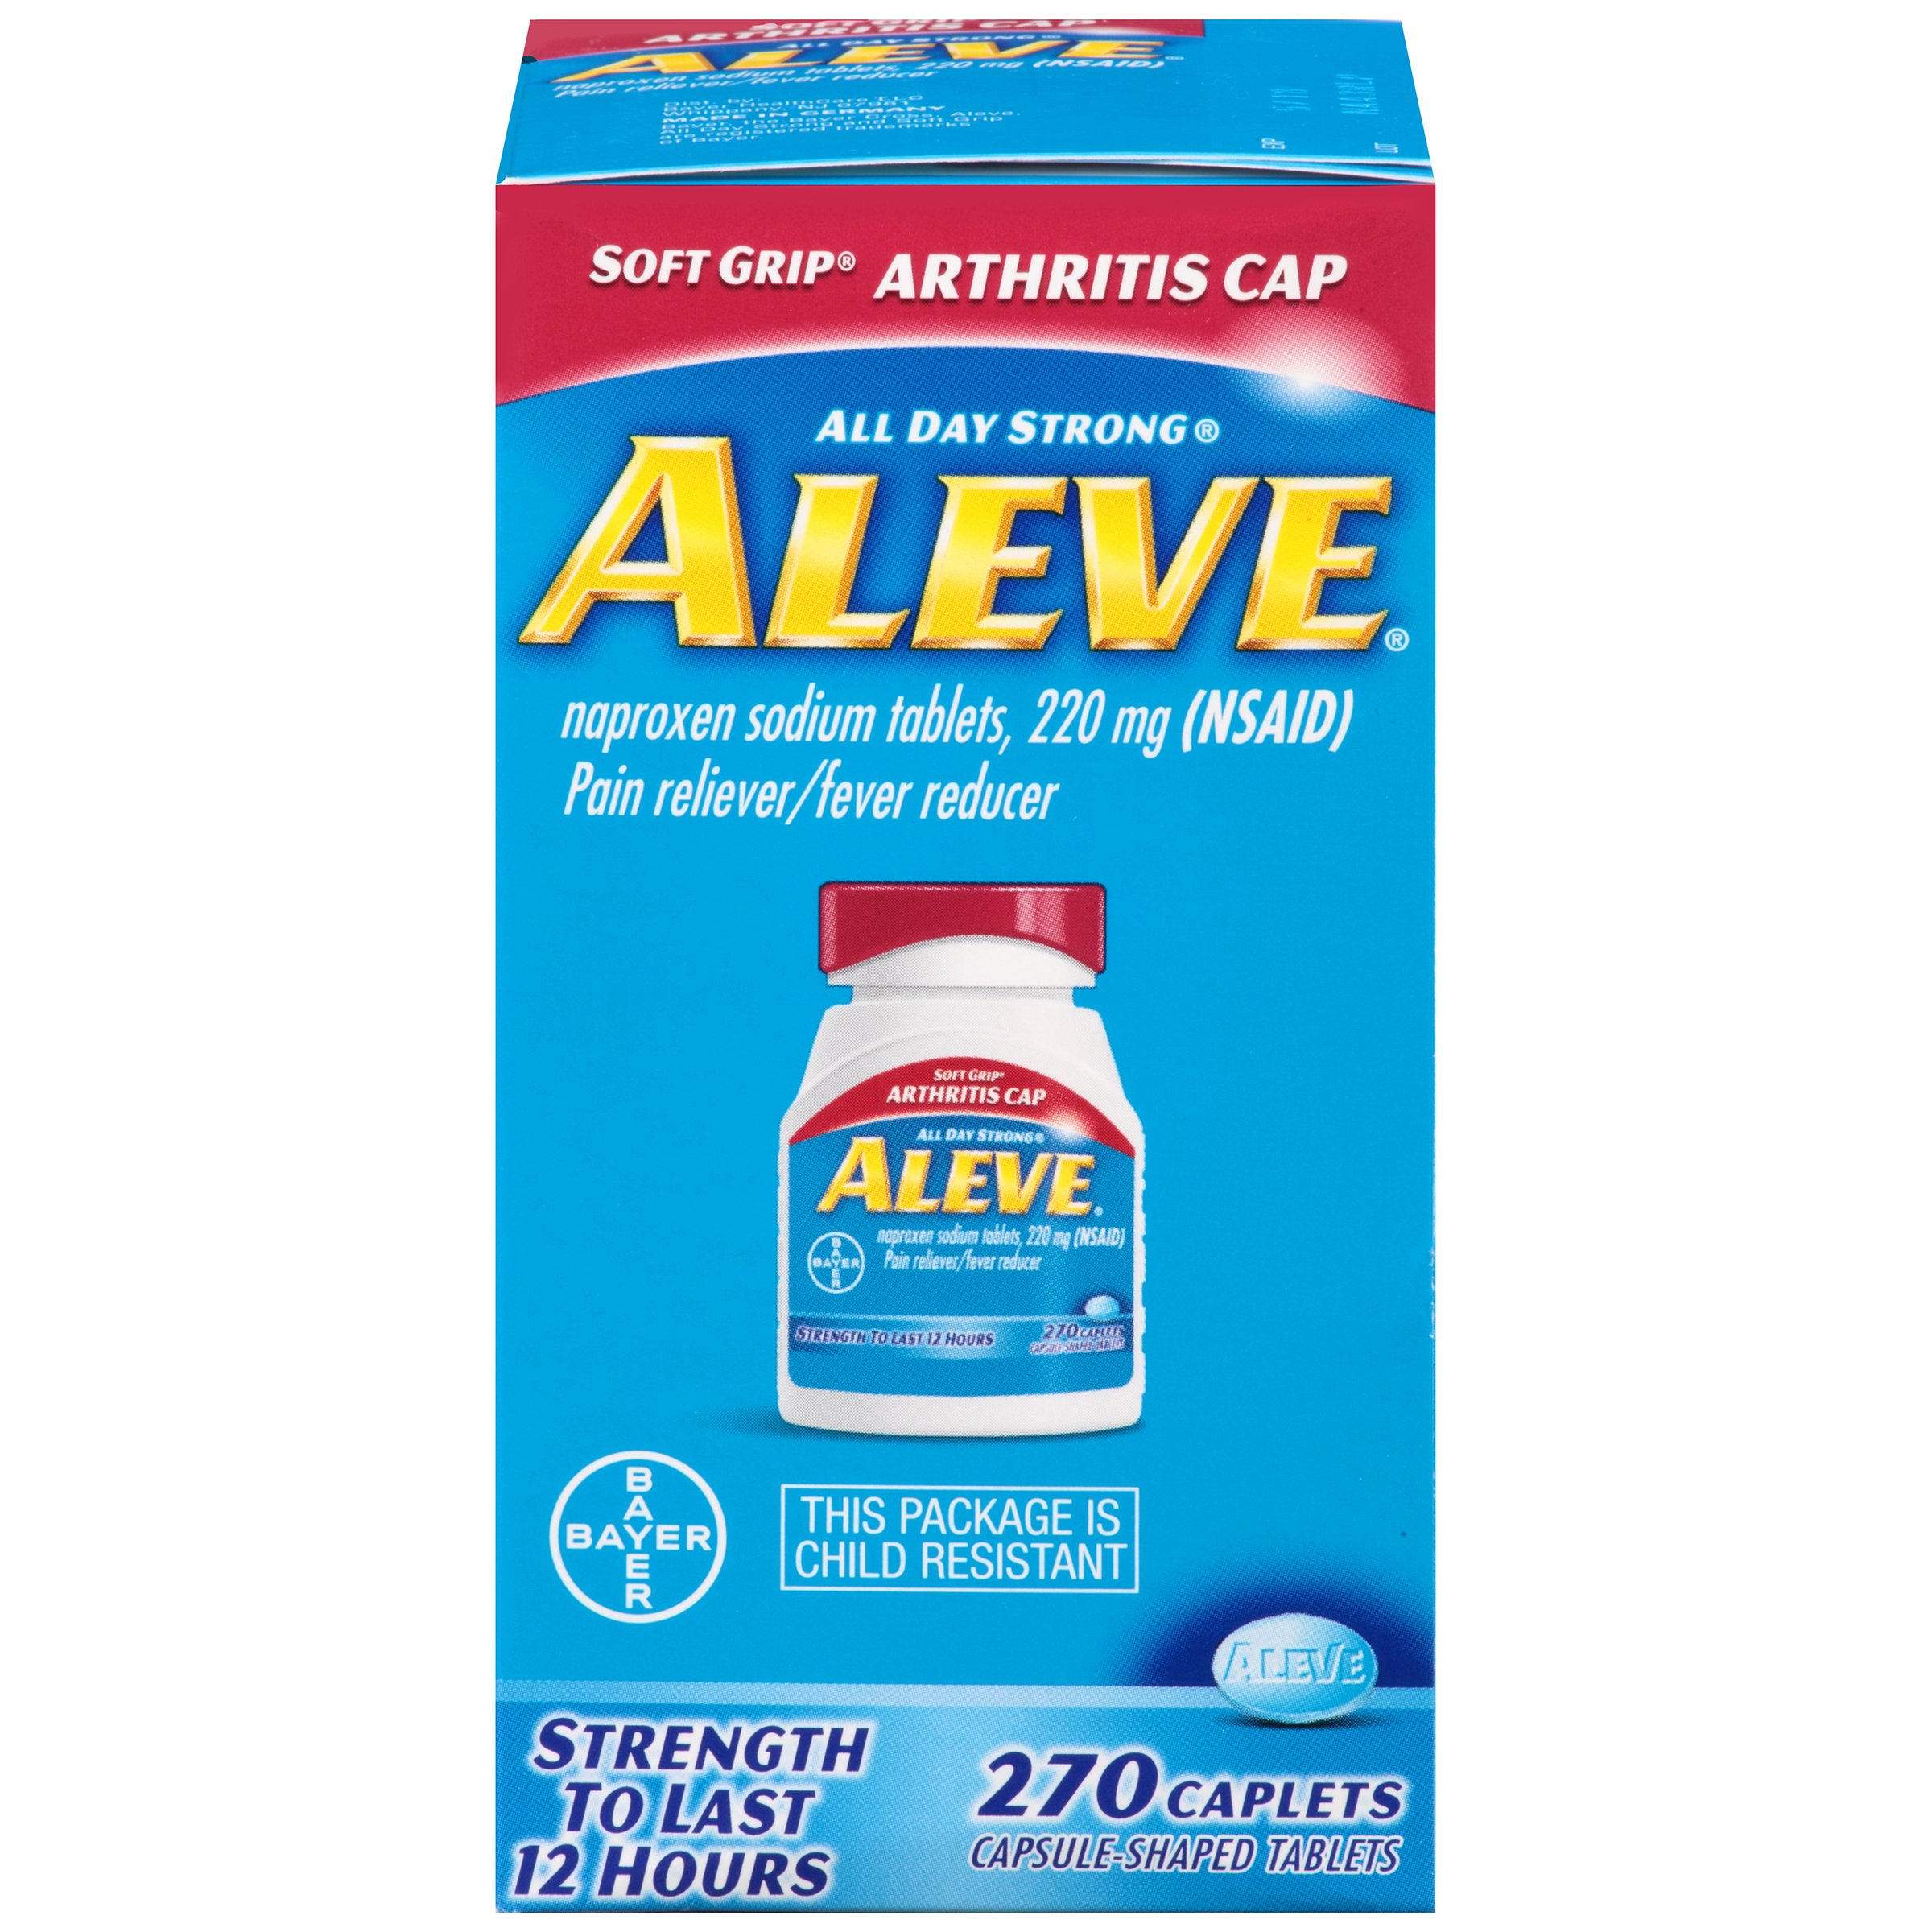 Aleve Soft Grip  Arthritis Cap Caplets, Naproxen Sodium 220 mg (NSAID), Pain Reliever/Fever Reducer, #1 Orthopedic Surgeon Recommended, 270 Count by Aleve